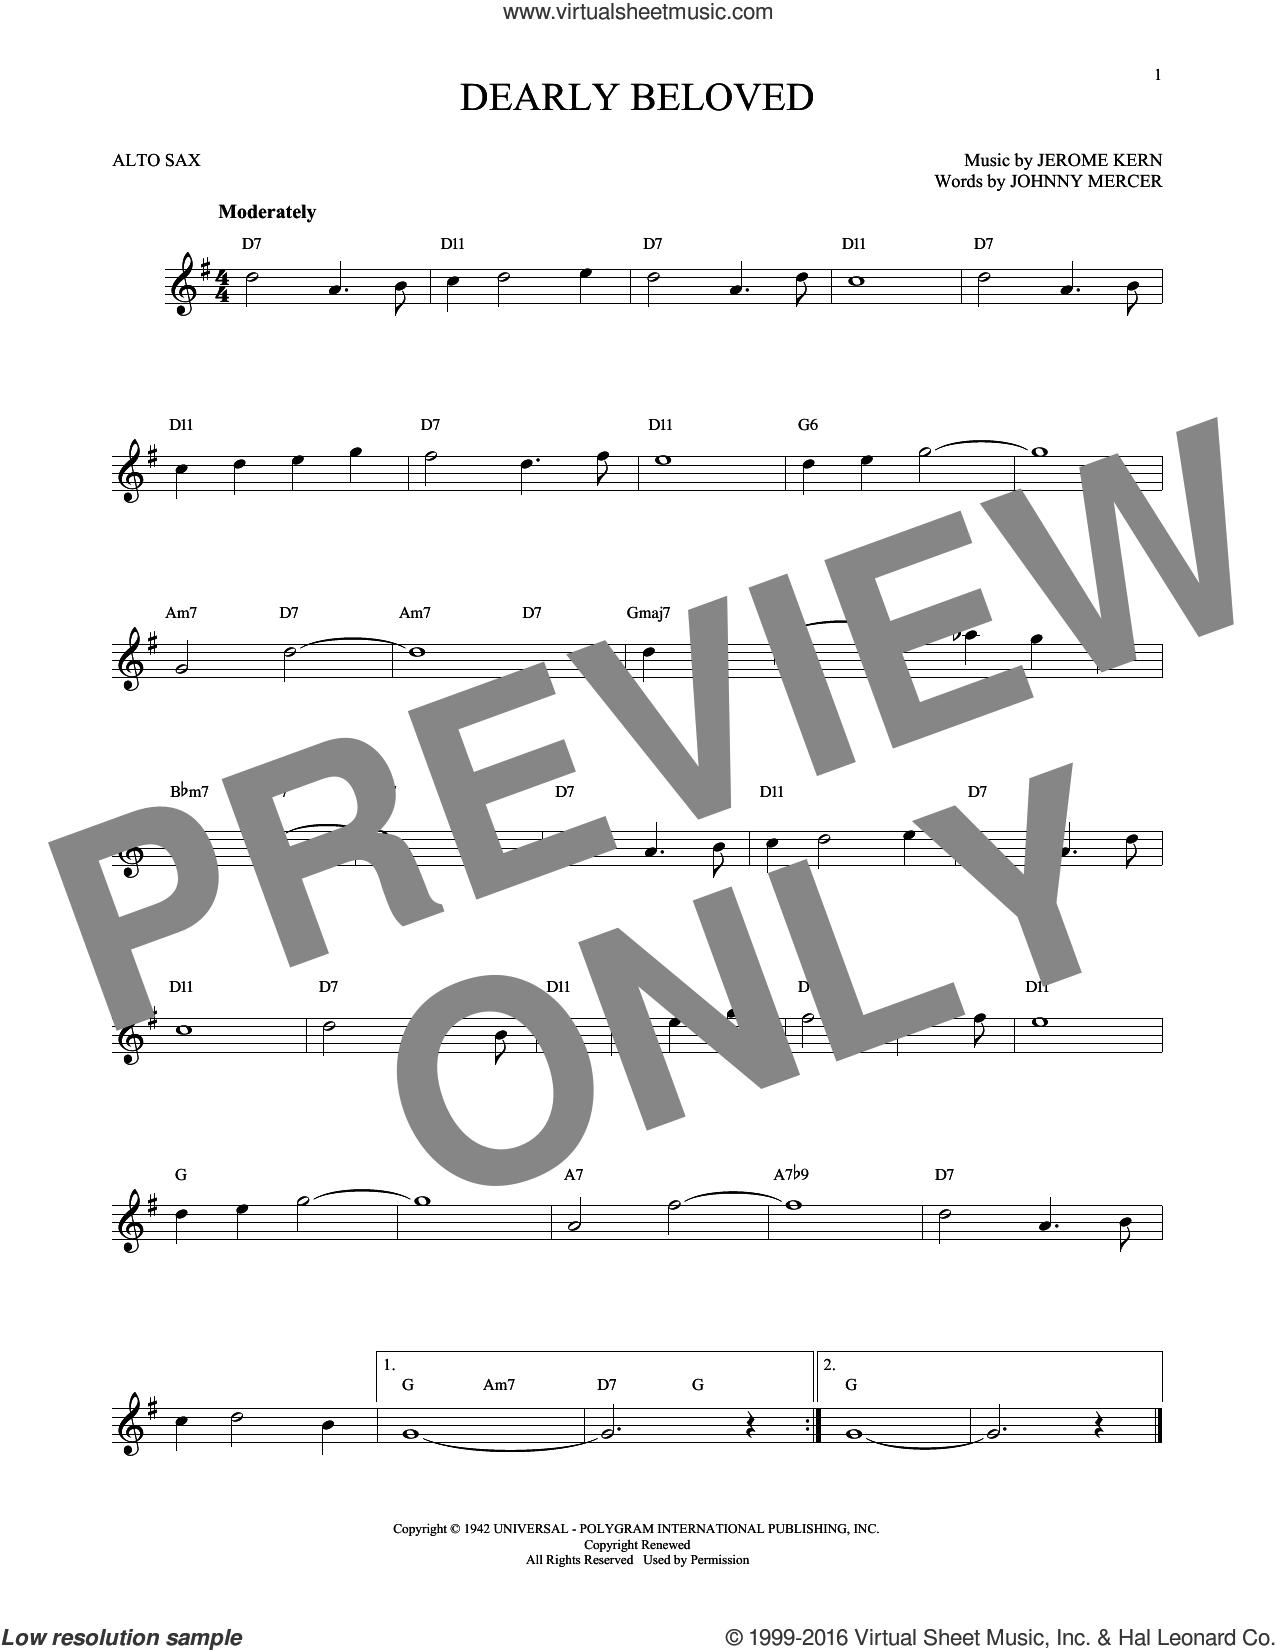 Dearly Beloved sheet music for alto saxophone solo by Jerome Kern and Johnny Mercer, intermediate skill level